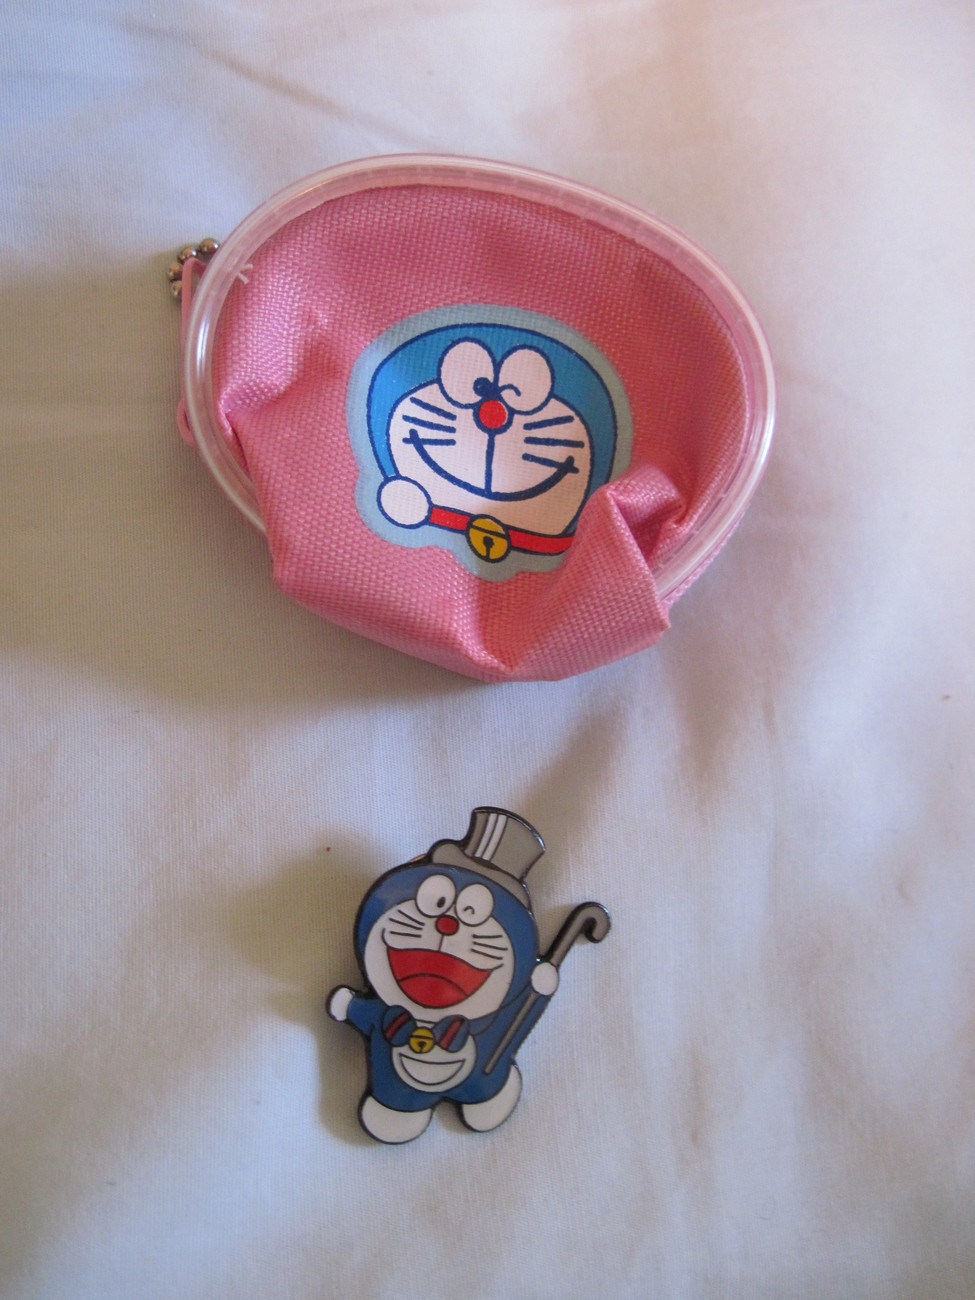 Japan anime Doraemon pin and pouch